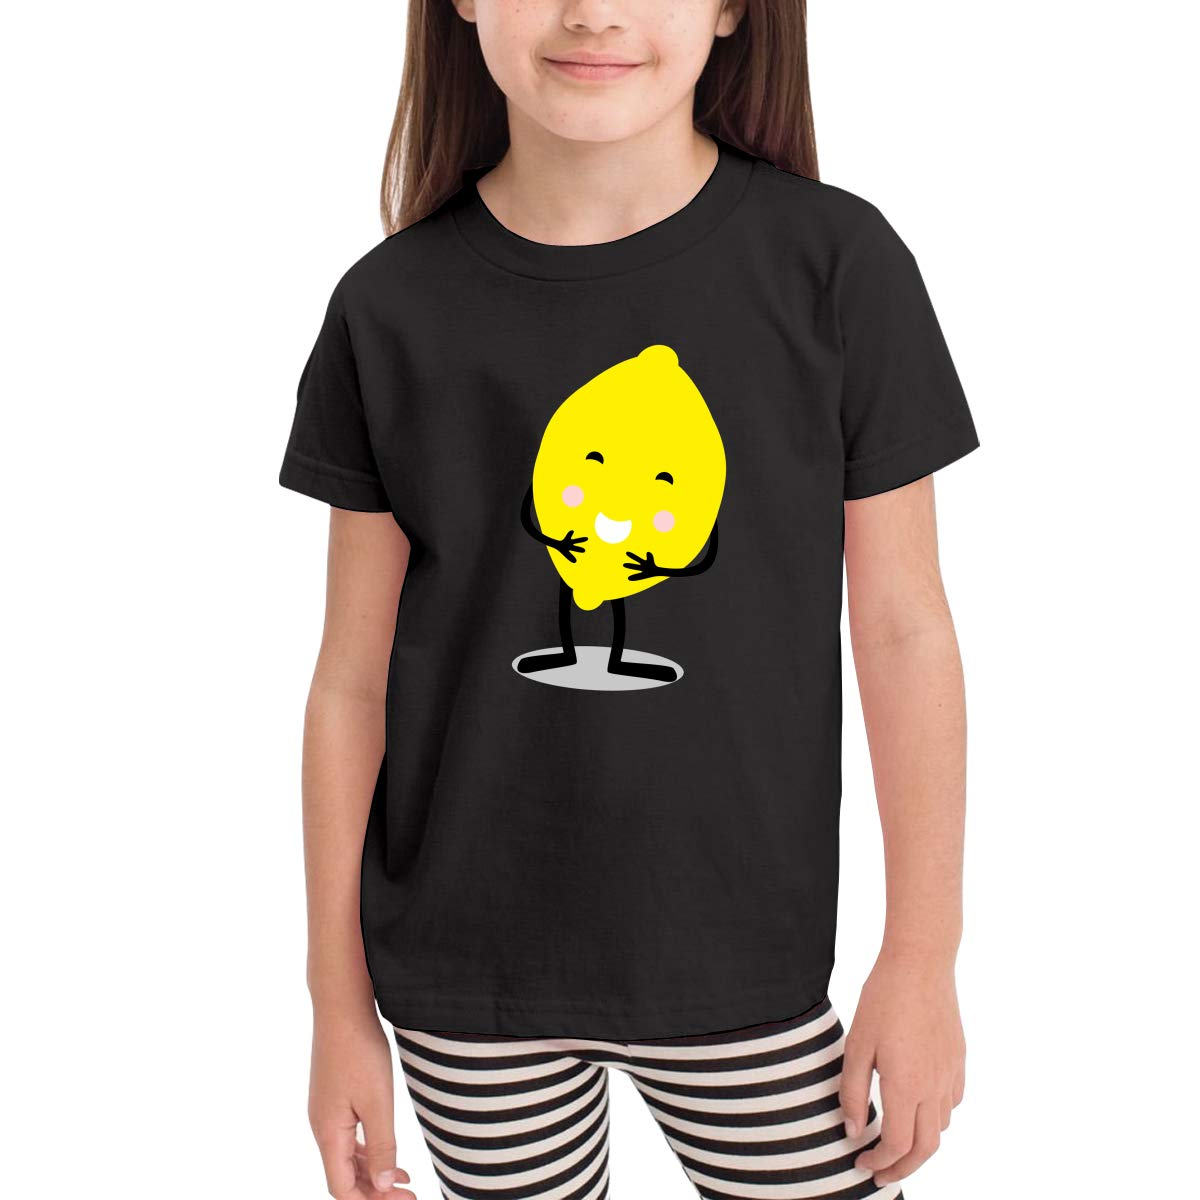 CERTONGCXTS Baby Girls Little Boys Yellow Lemon Cotton Short Sleeve T-Shirt Size 2-6